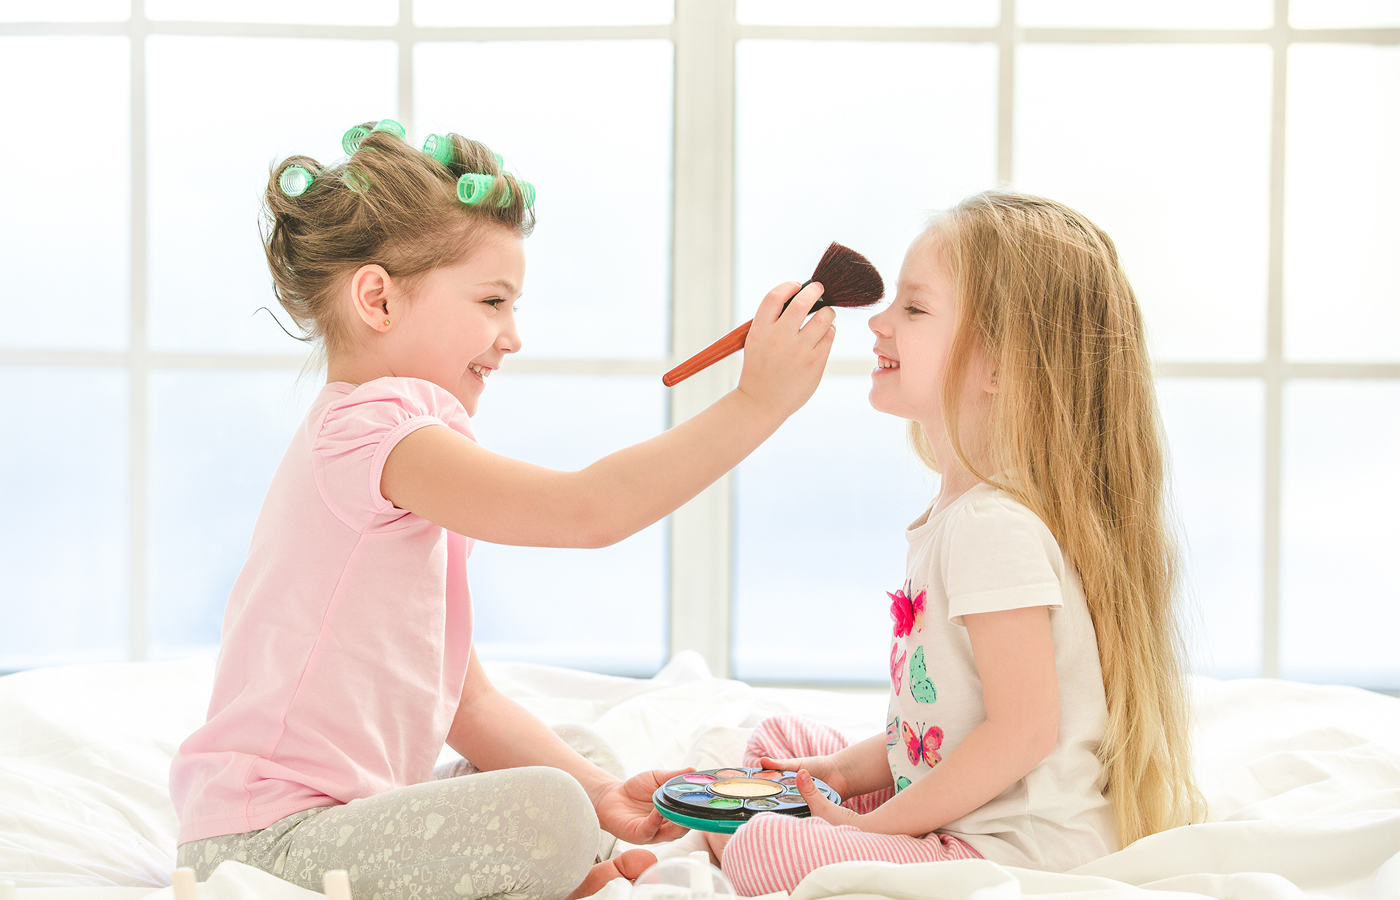 The Dangerous World of Kids' Makeup